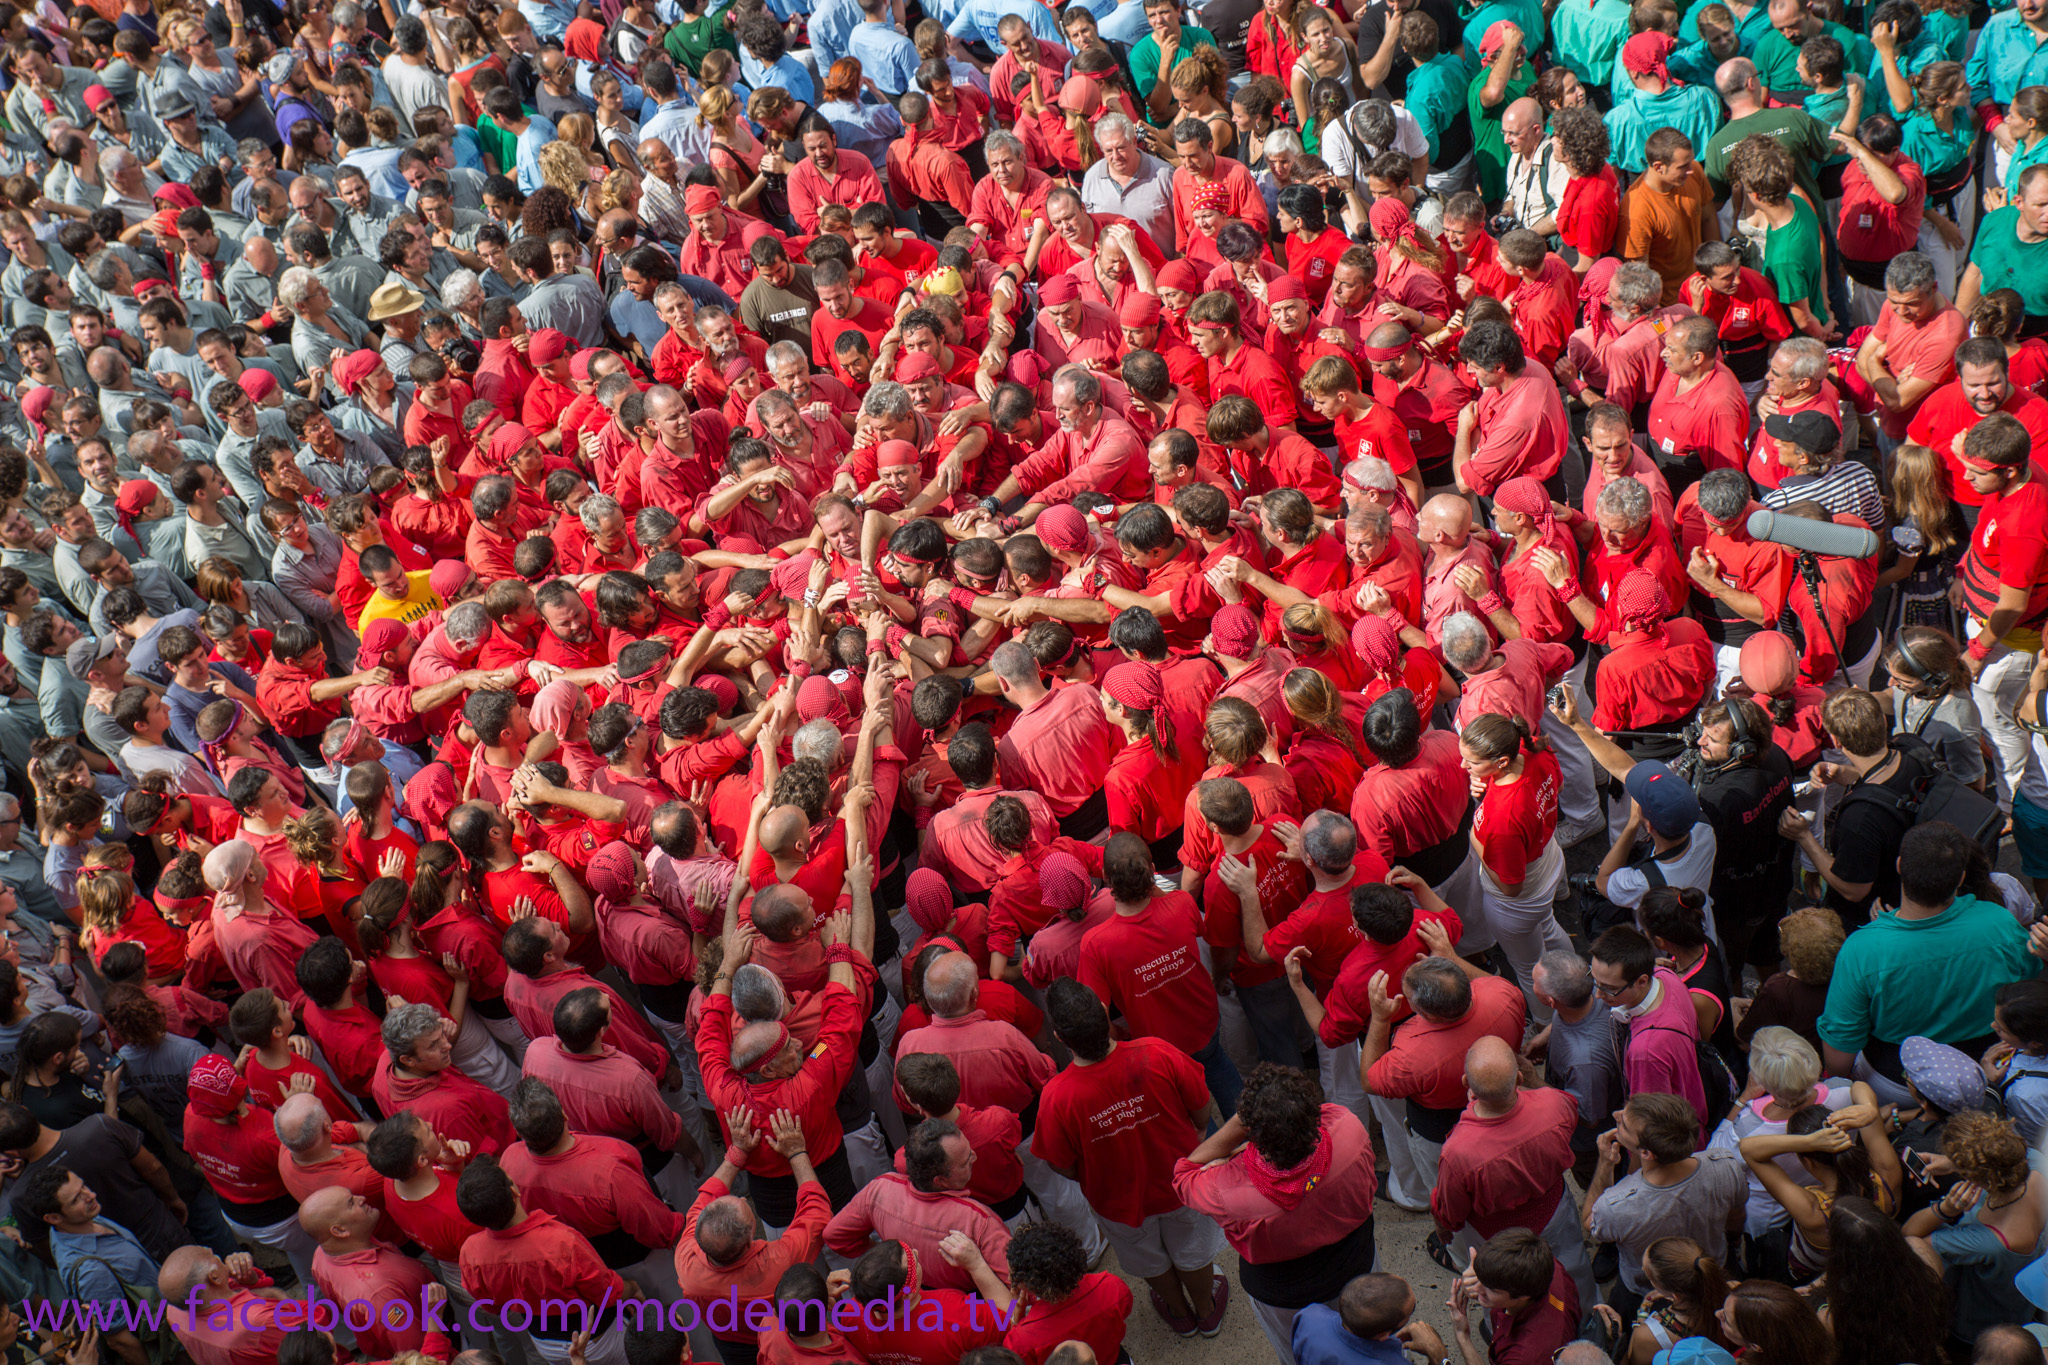 Castellers for the base of their human tower